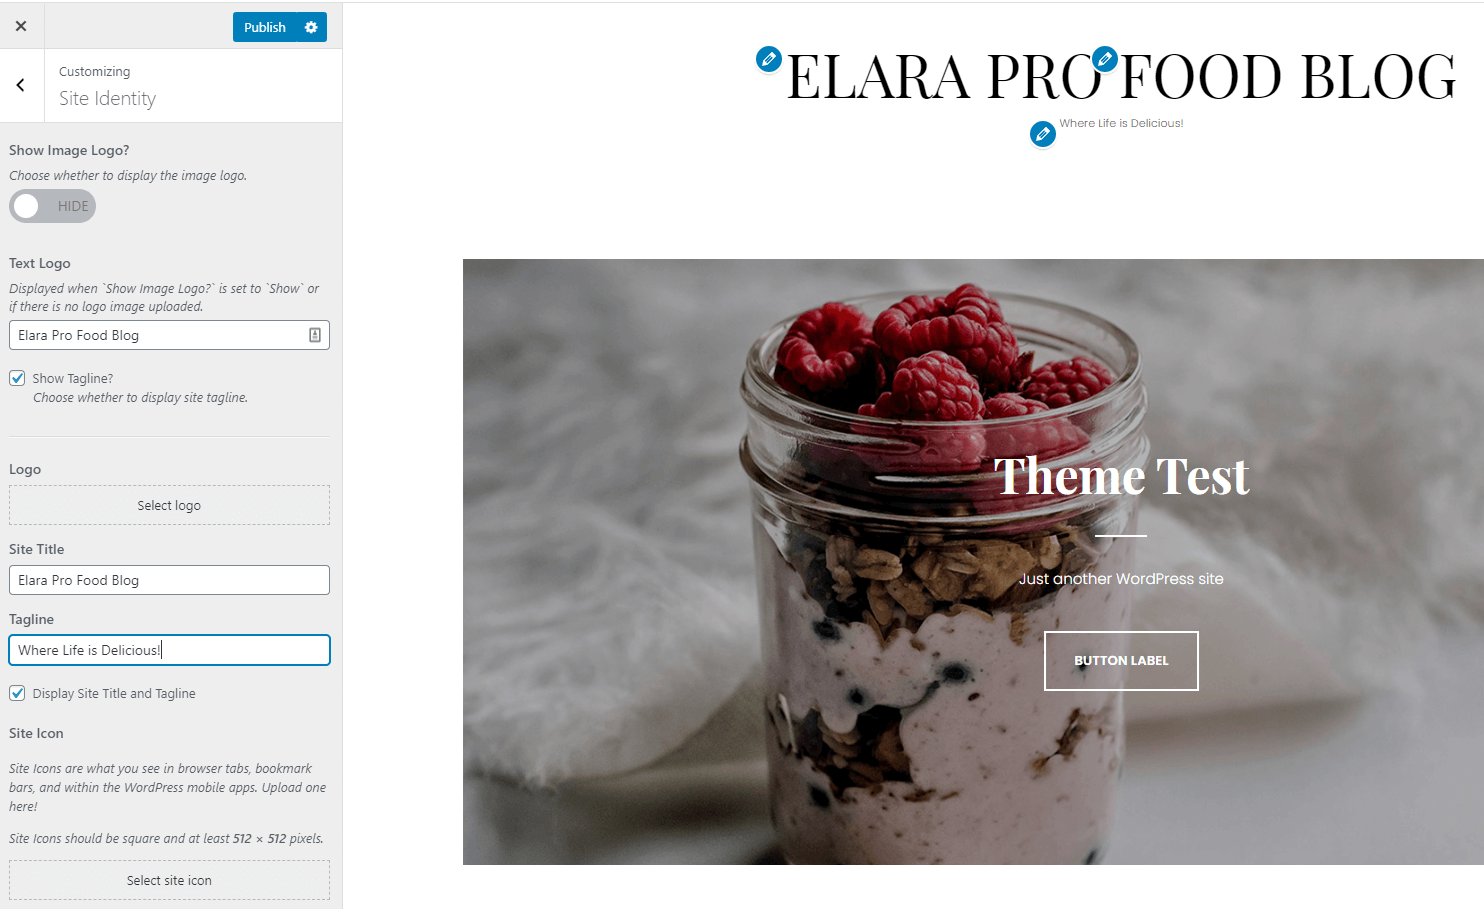 Editing the site title and tagline for Elara Pro in the WordPress Customizer.